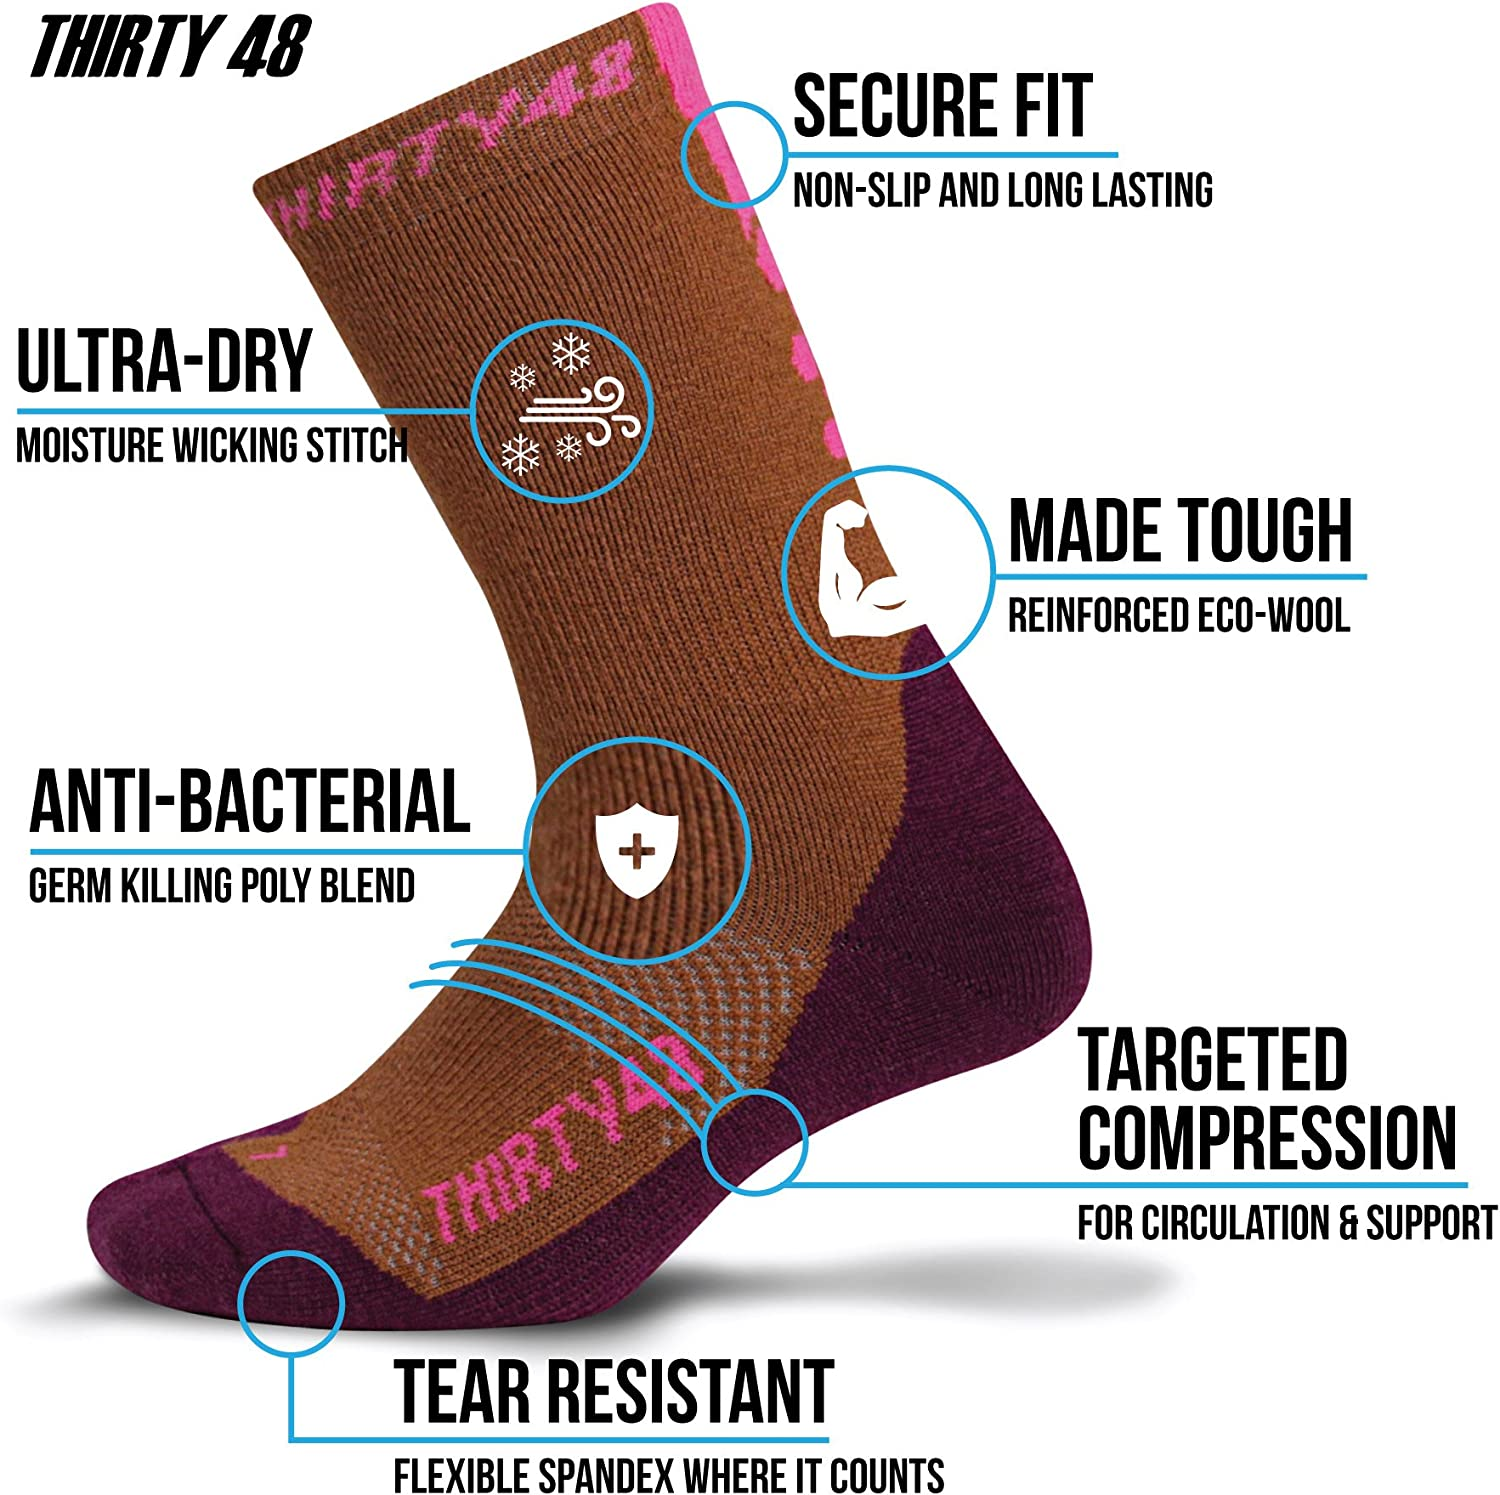 Winter Outdoor Travel :: 3 Pack Brown//P Premium Hiking Socks by Thirty48 :: Cushioned Anti-Bacterial Vegan Wool :: HK Series :: Thermal Performance Crew Socks :: Anti-Odor Moisture Wicking Poly :: Best Socks for Hiking Mountain Climbing Camping Boots